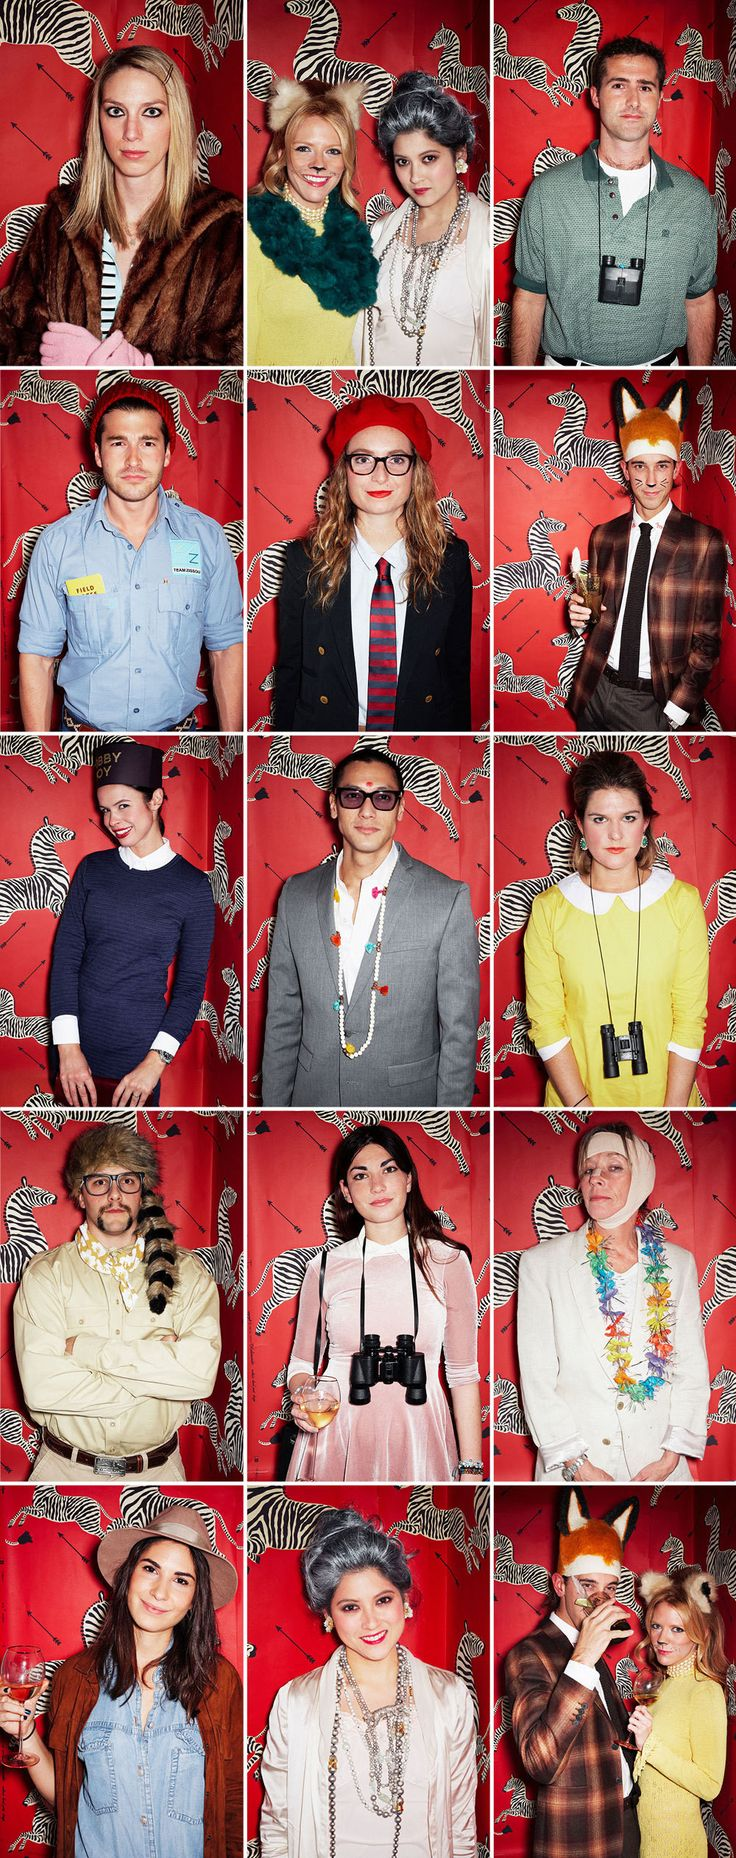 """A Wes Anderson-inspired party featured a photo booth with Scalamandre's iconic zebra-print wallpaper that appeared in Anderson's film """"The Royal Tenenbaums."""" Photo: Alonzo Maciel. """"A Fabulously Good Fete"""" written by Sarah Jean Shelton and produced by Samuel Masters. Lonny (December 2014/January 2015)."""